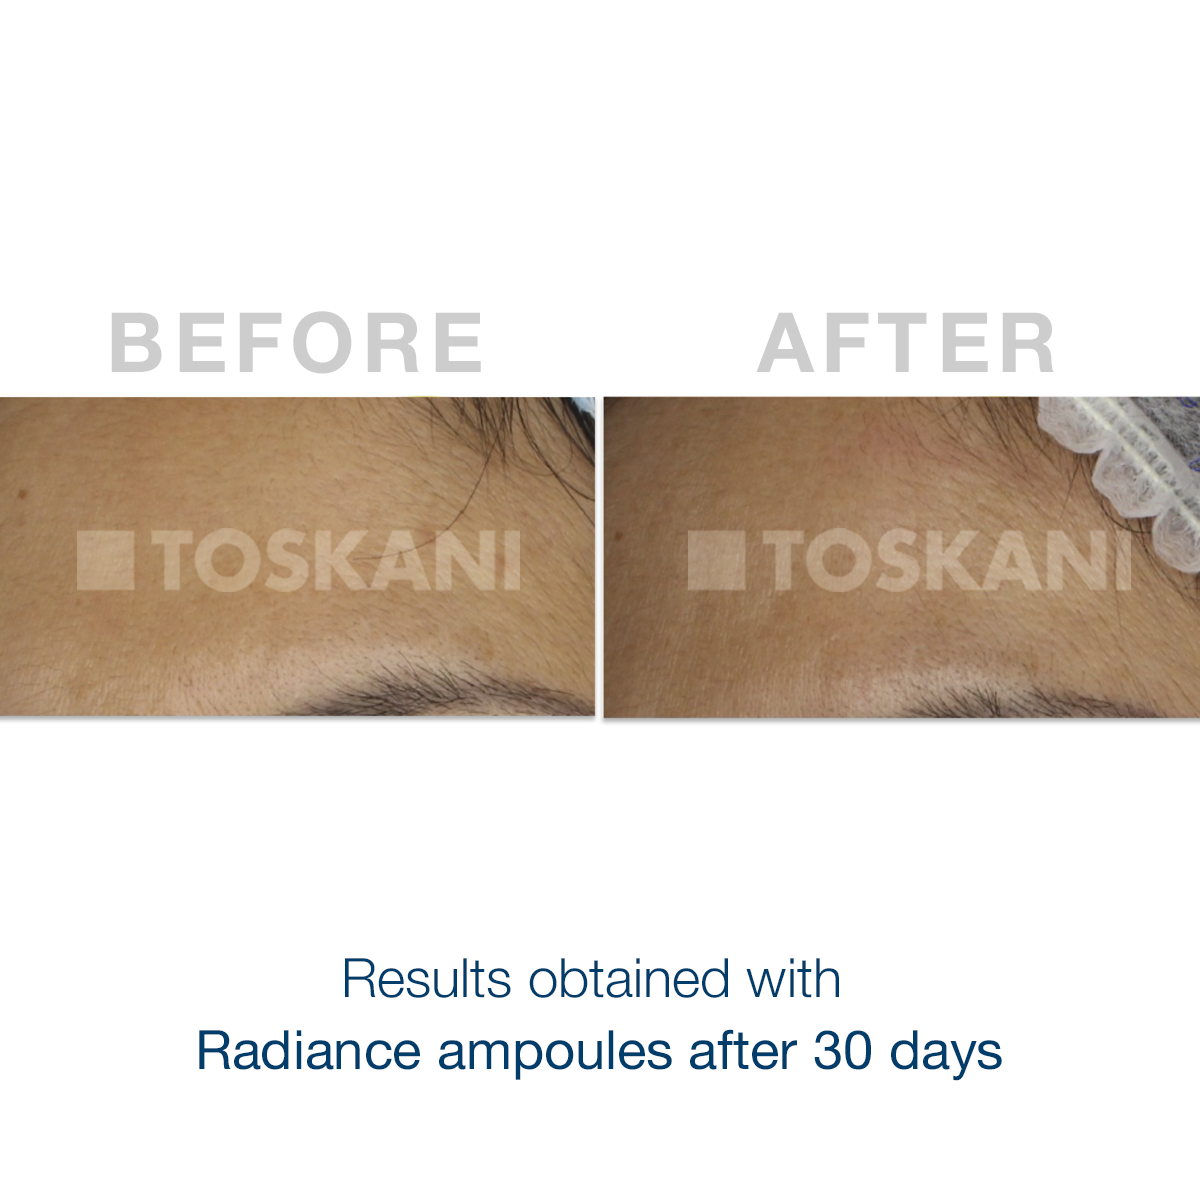 TKN_radiance-ampoules_before-after